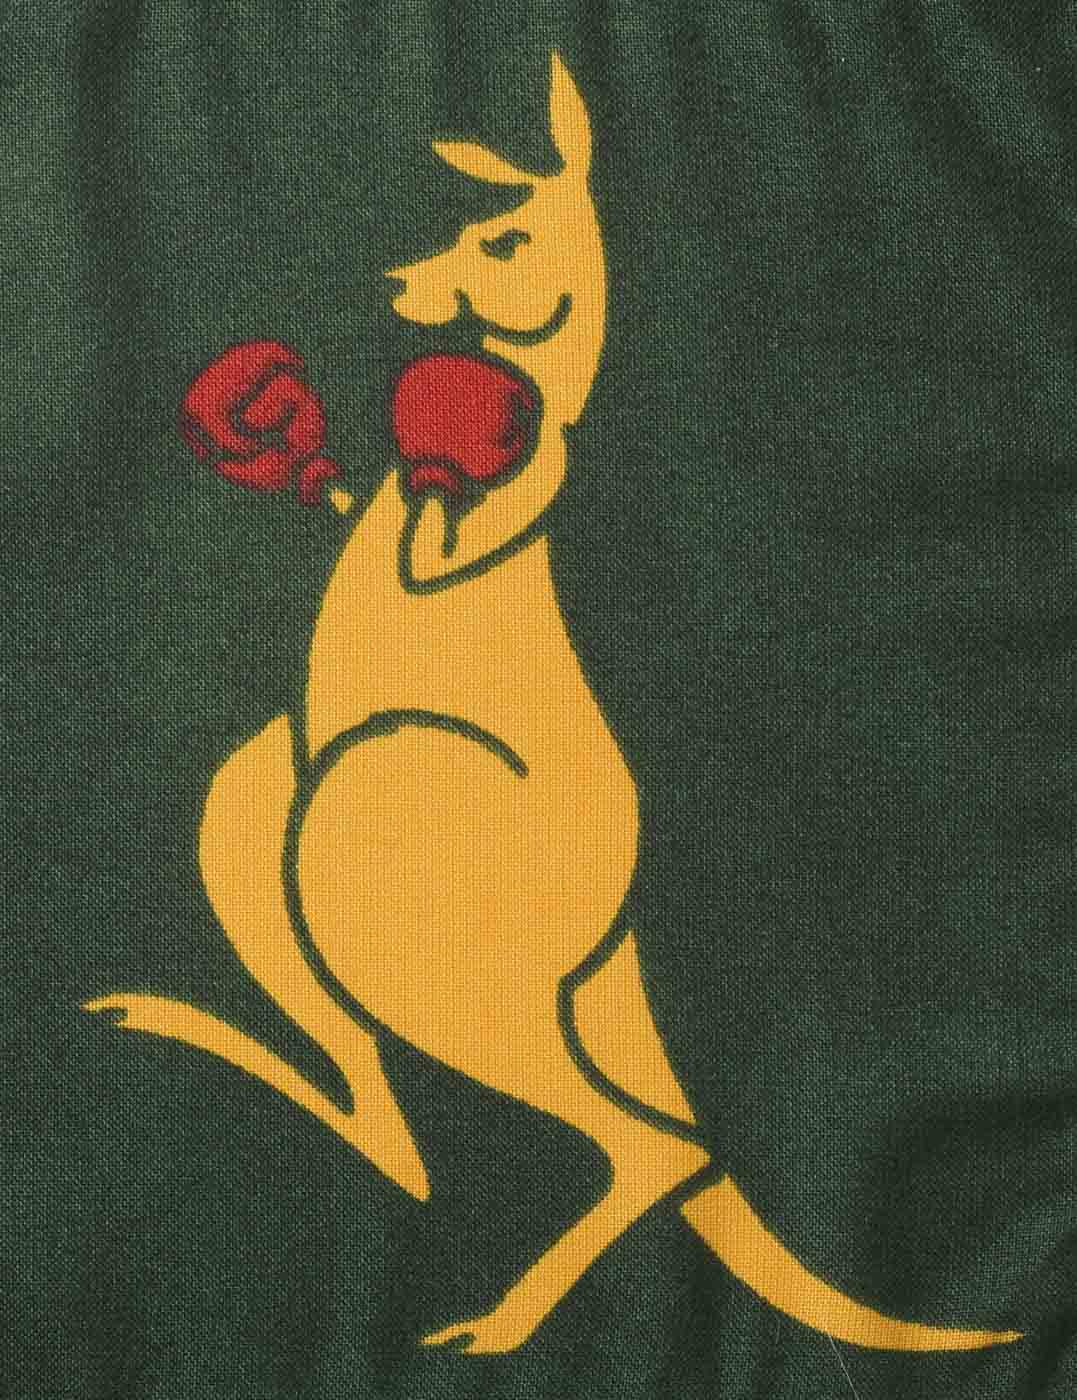 A dark green flag with a caricature of a yellow kangaroo wearing red boxing gloves. - click to view larger image